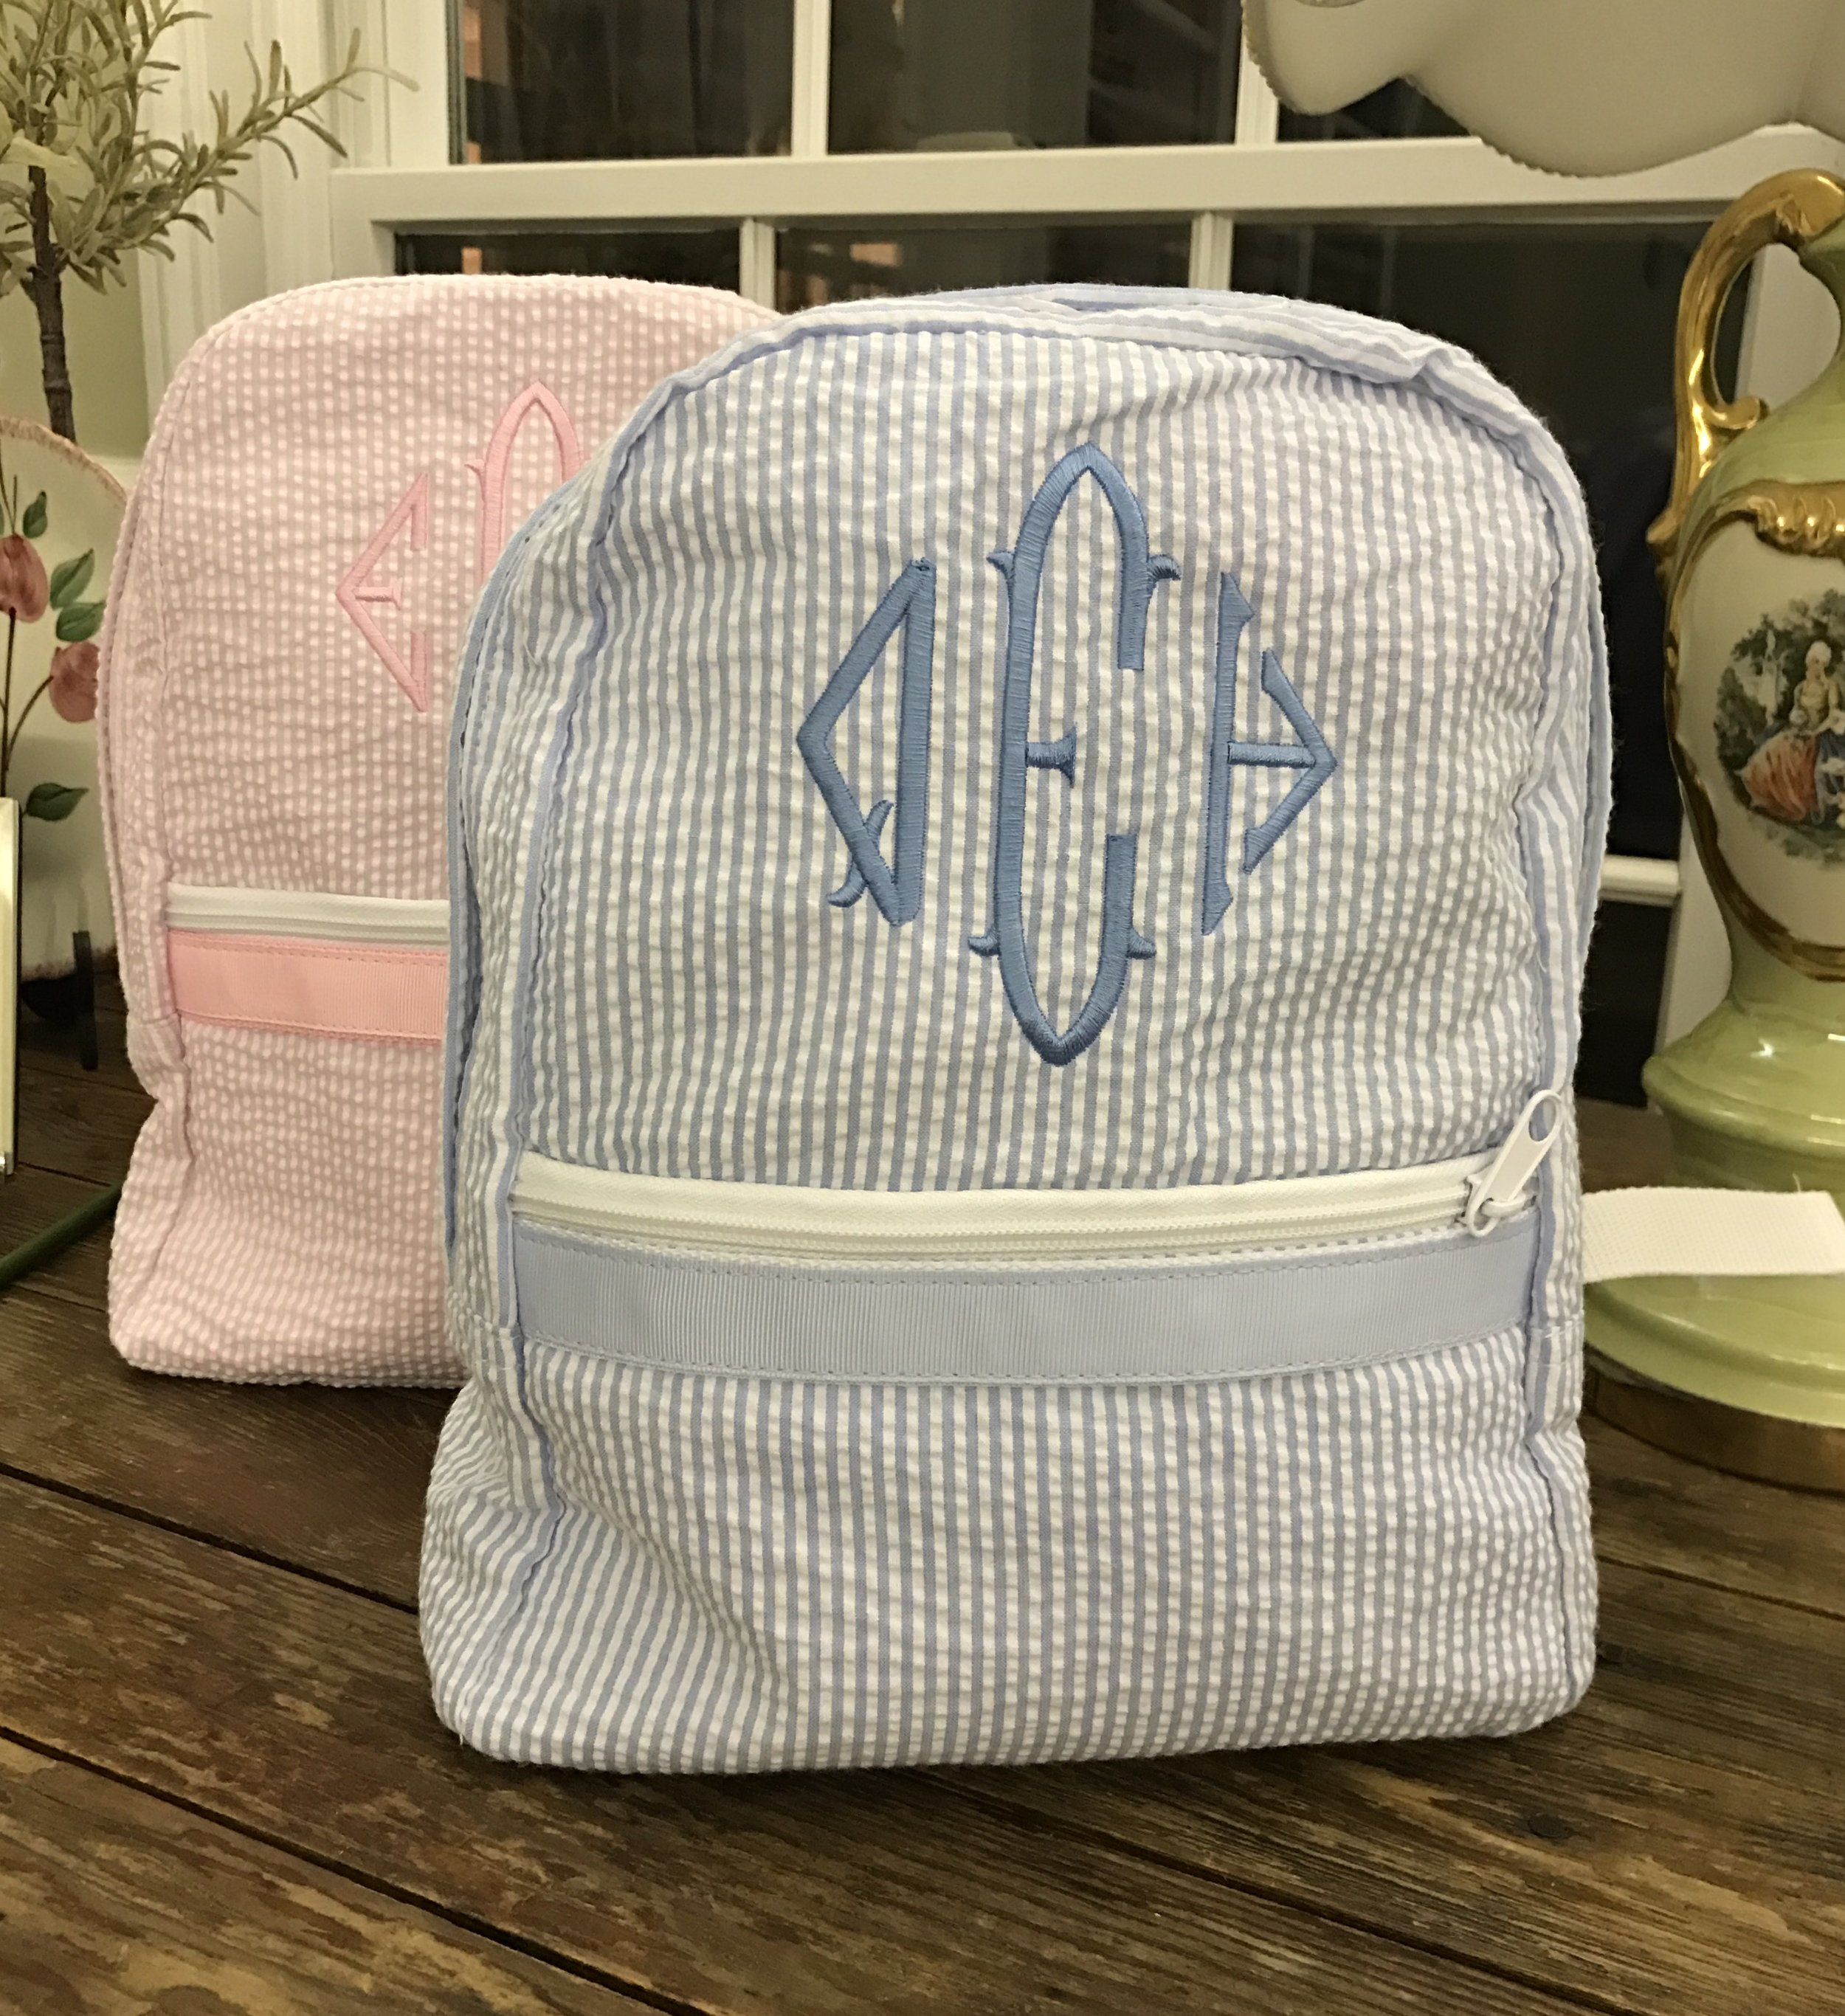 light blue book bag.jpg